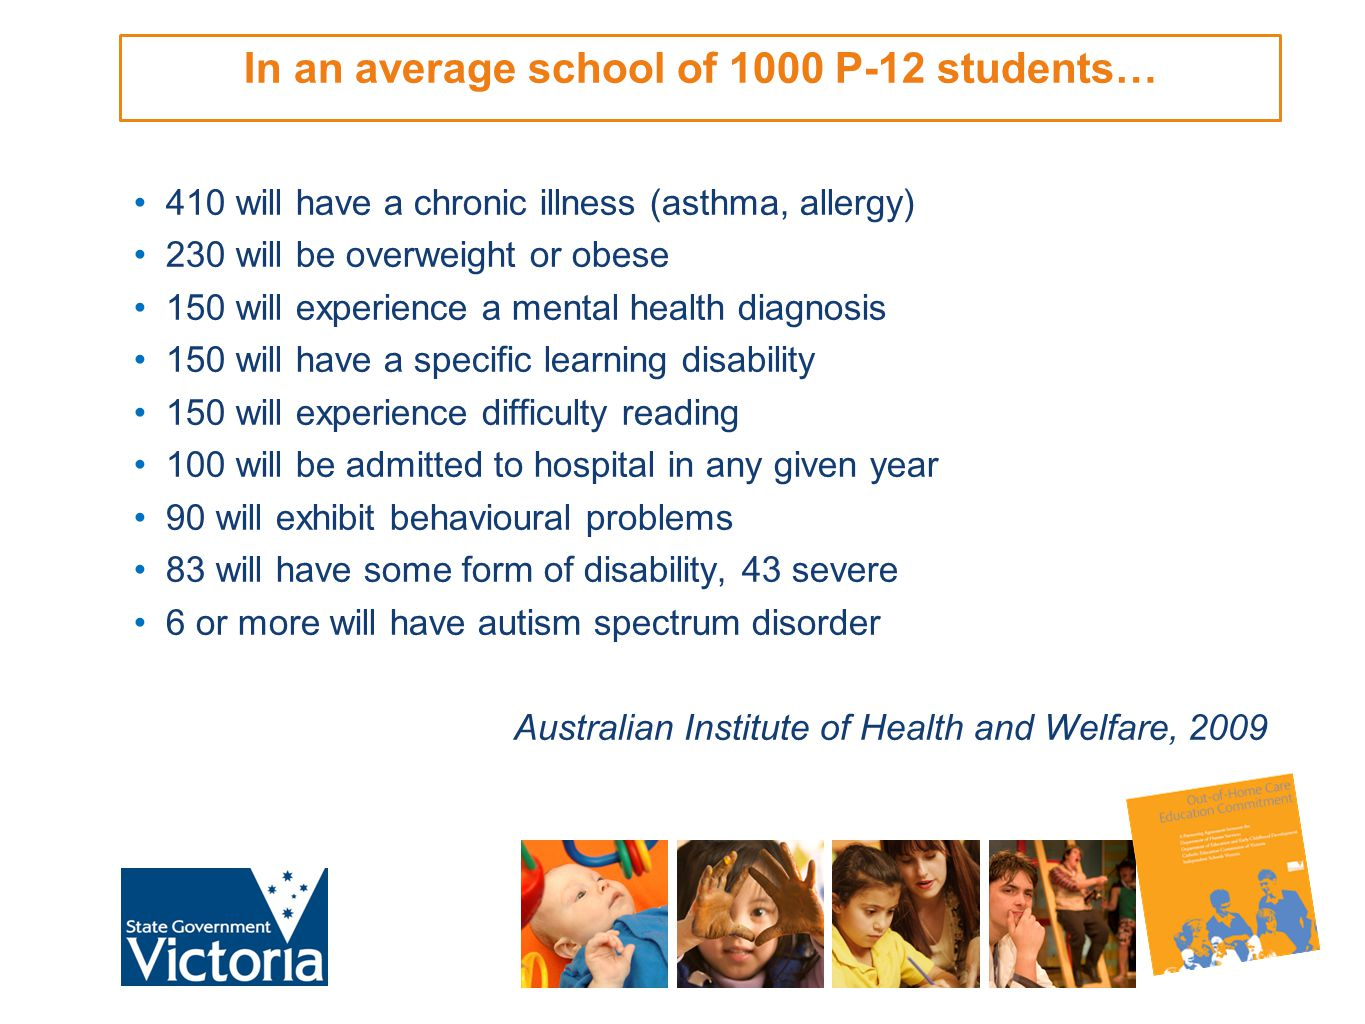 In an average school of 1000 P-12 students… 410 will have a chronic illness (asthma, allergy) 230 will be overweight or obese 150 will experience a mental health diagnosis 150 will have a specific learning disability 150 will experience difficulty reading 100 will be admitted to hospital in any given year 90 will exhibit behavioural problems 83 will have some form of disability, 43 severe 6 or more will have autism spectrum disorder Australian Institute of Health and Welfare, 2009